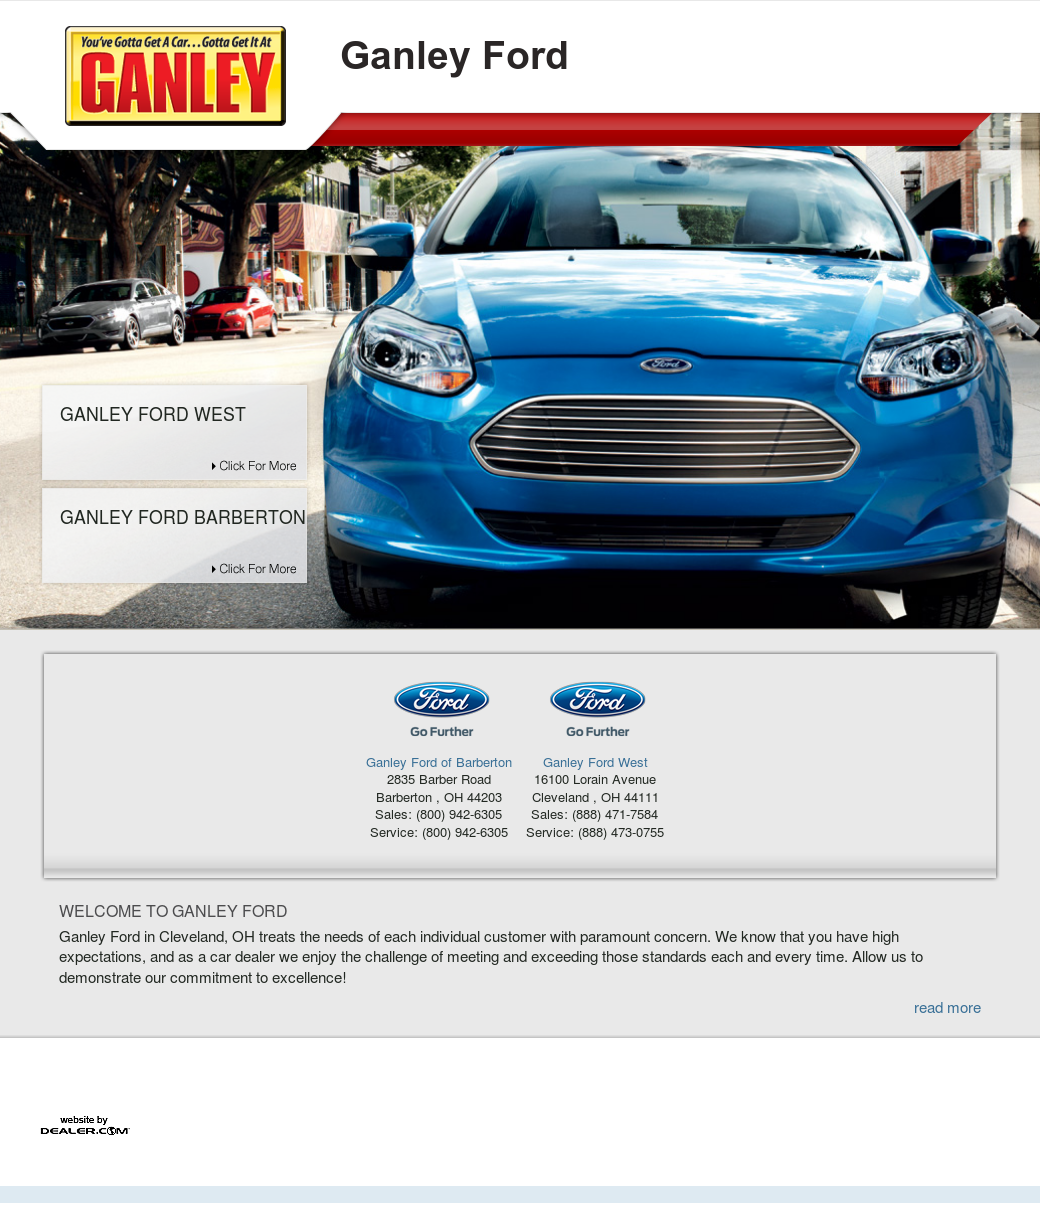 Ganley Ford Barberton >> Ganley Ford Competitors Revenue And Employees Owler